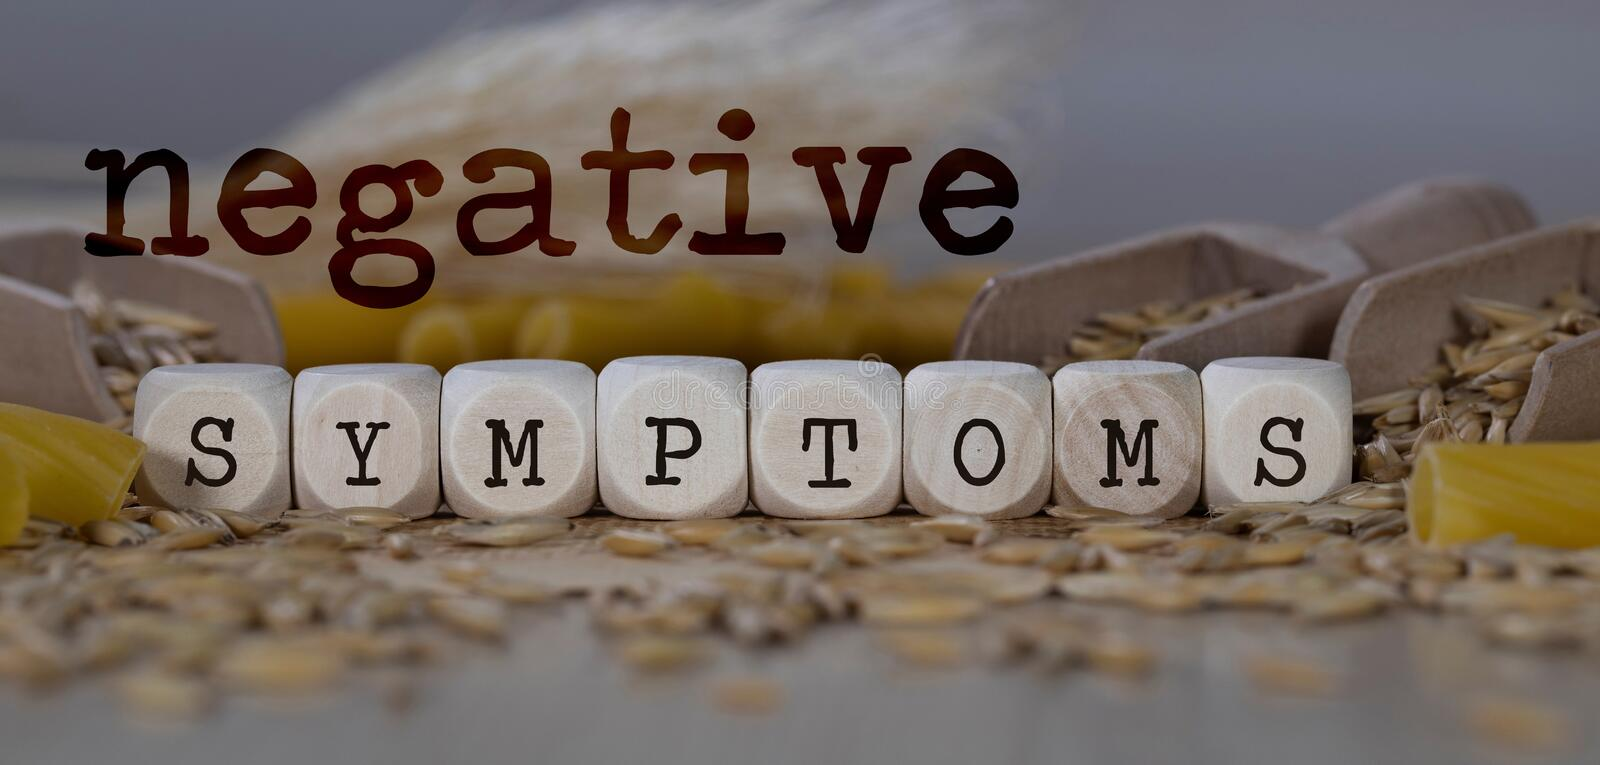 Words NEGATIVE SYMPTOMS  composed of wooden dices. Rye grains in the background. Closeup, allergen, allergy, deficiency, autoimmune, disorders, celiac, cereals stock photography